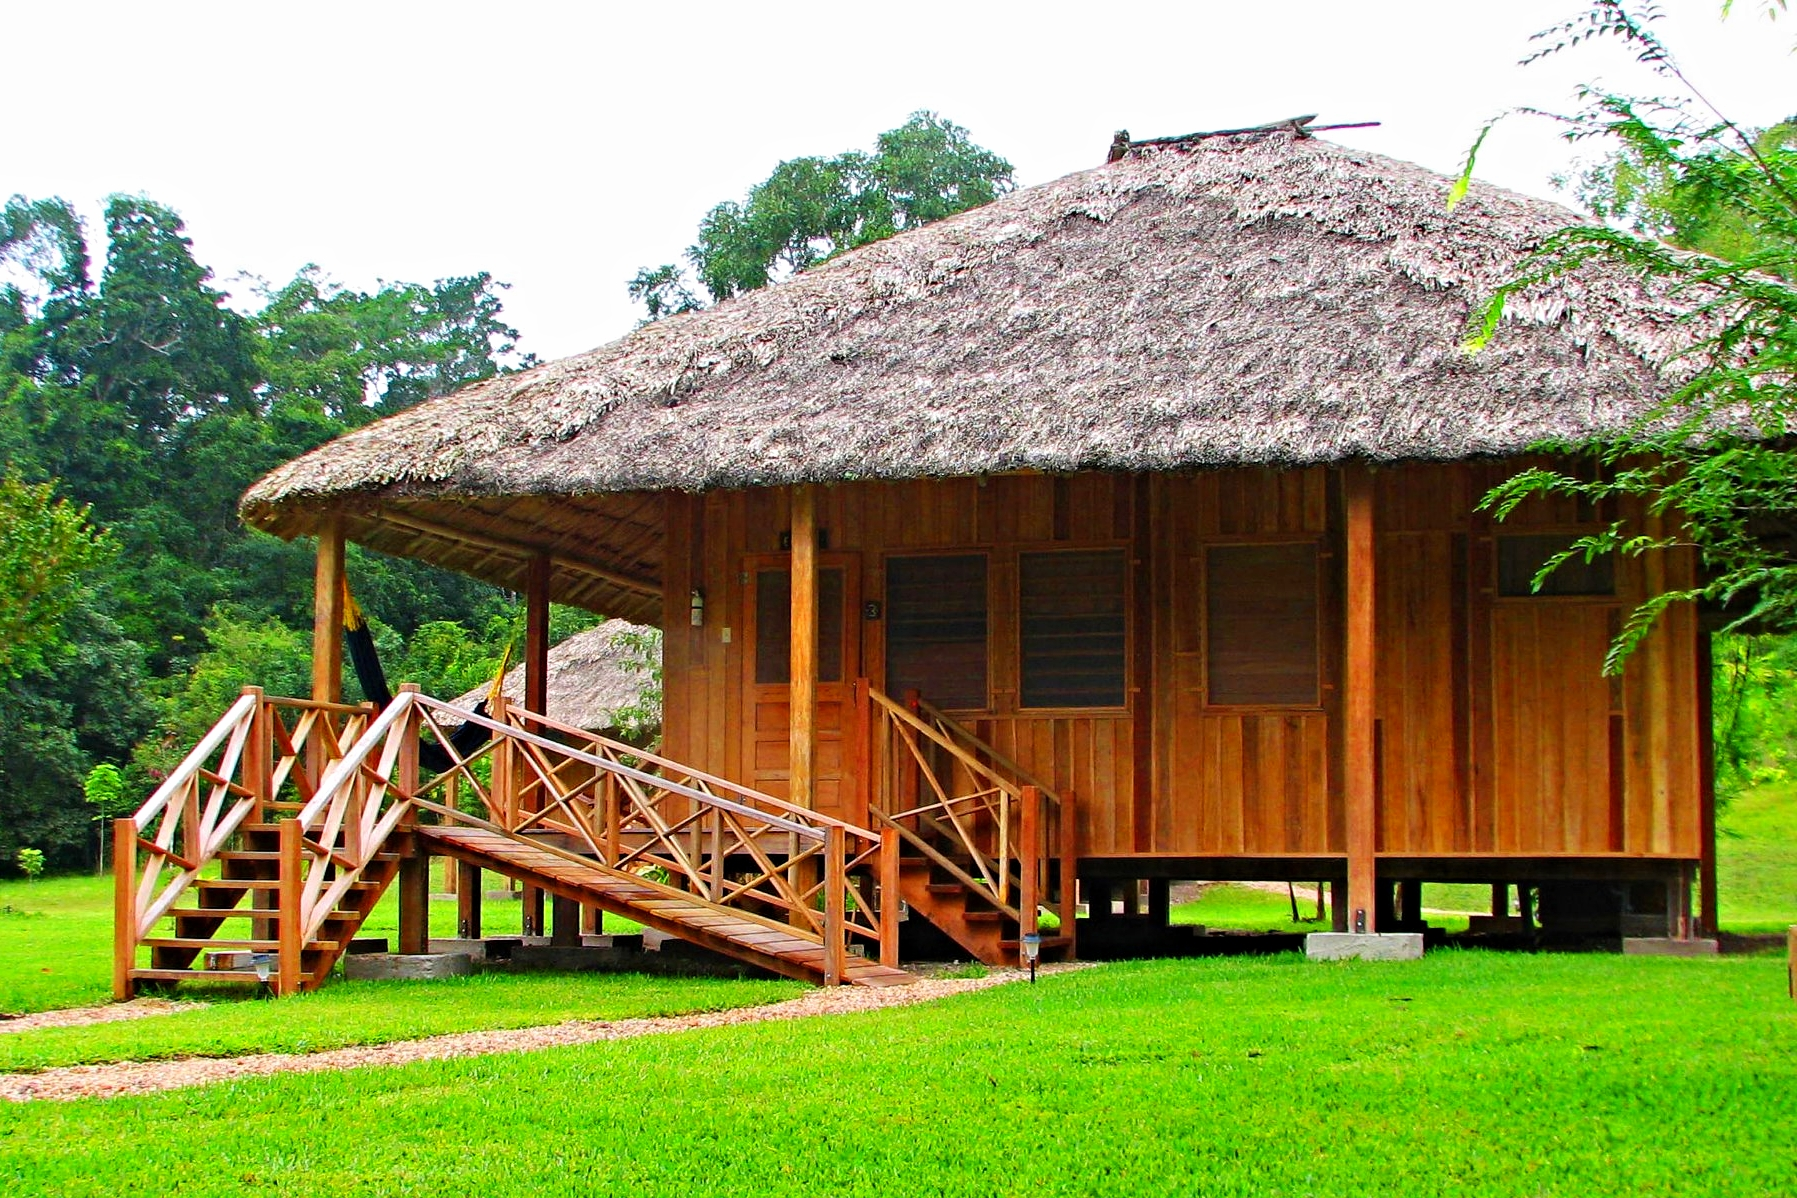 La Milpa is a Remote Eco-Lodge in the heart of the the Rio Bravo Conservation area